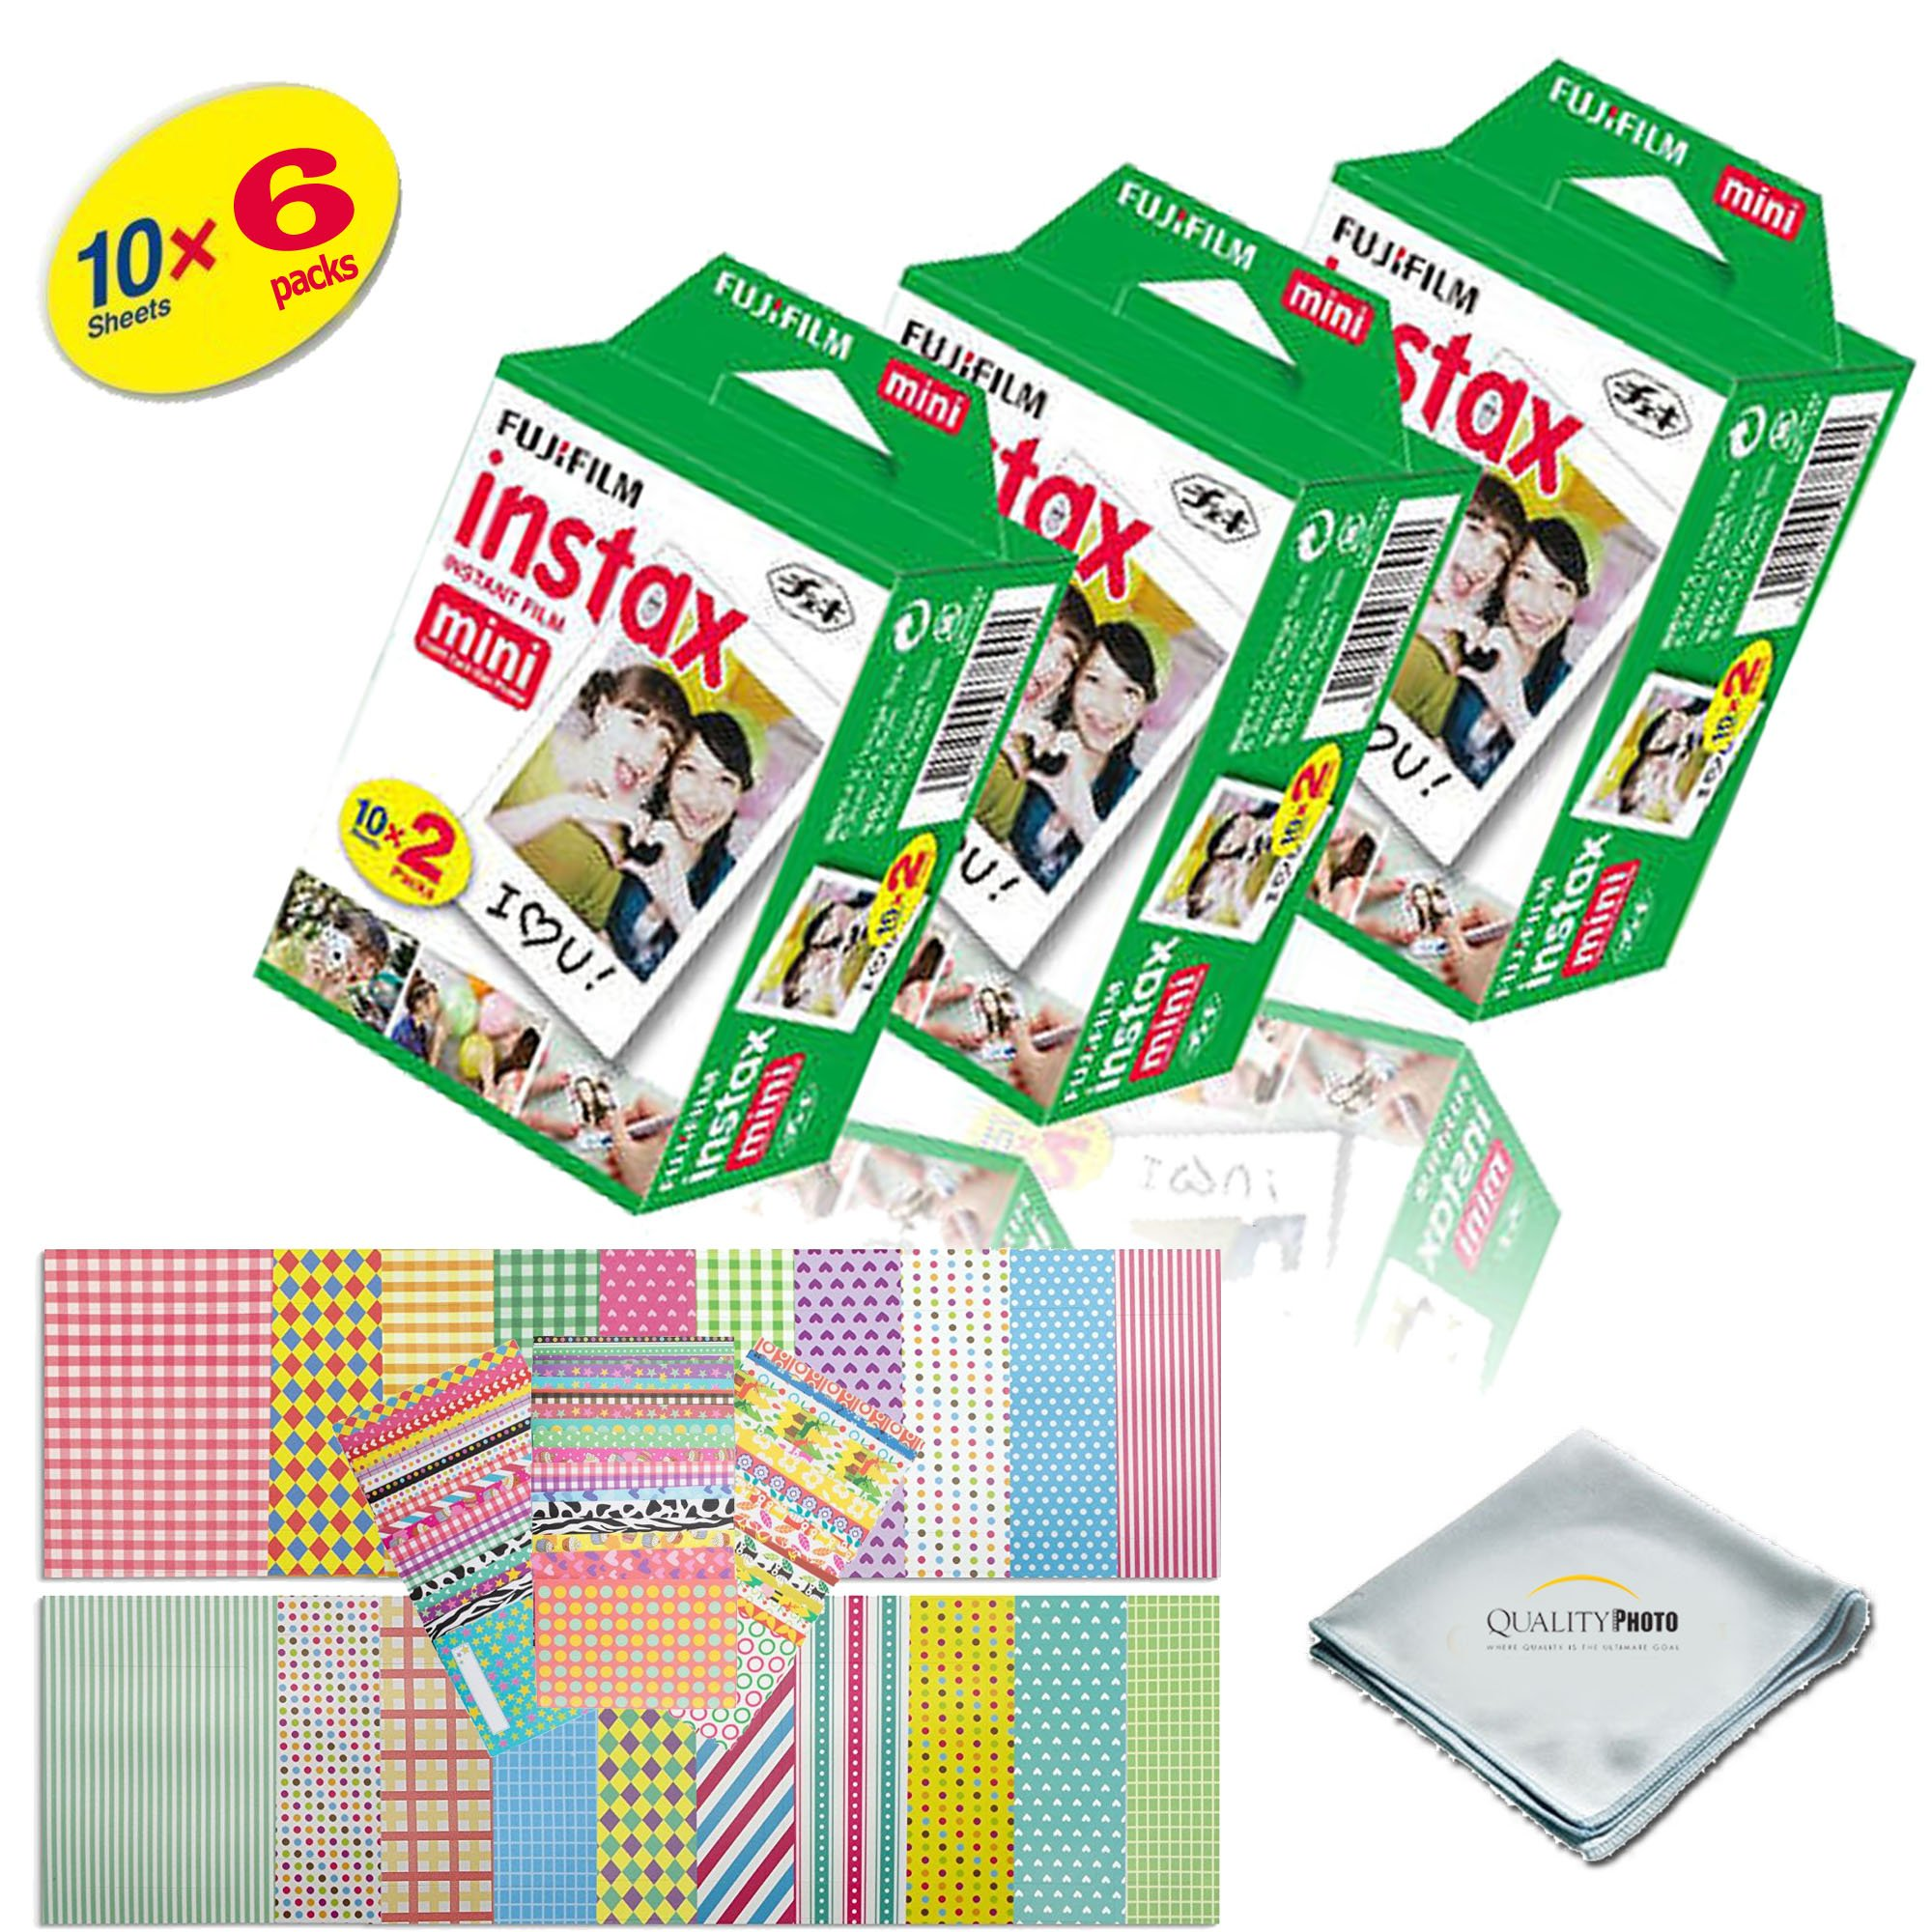 Fujifilm INSTAX Mini Instant Film 2 Pack - 60 SHEETS - (White) For Fujifilm Instax Mini 8 & Mini 9 Cameras + Frame Stickers and Microfiber Cloth Accessories …